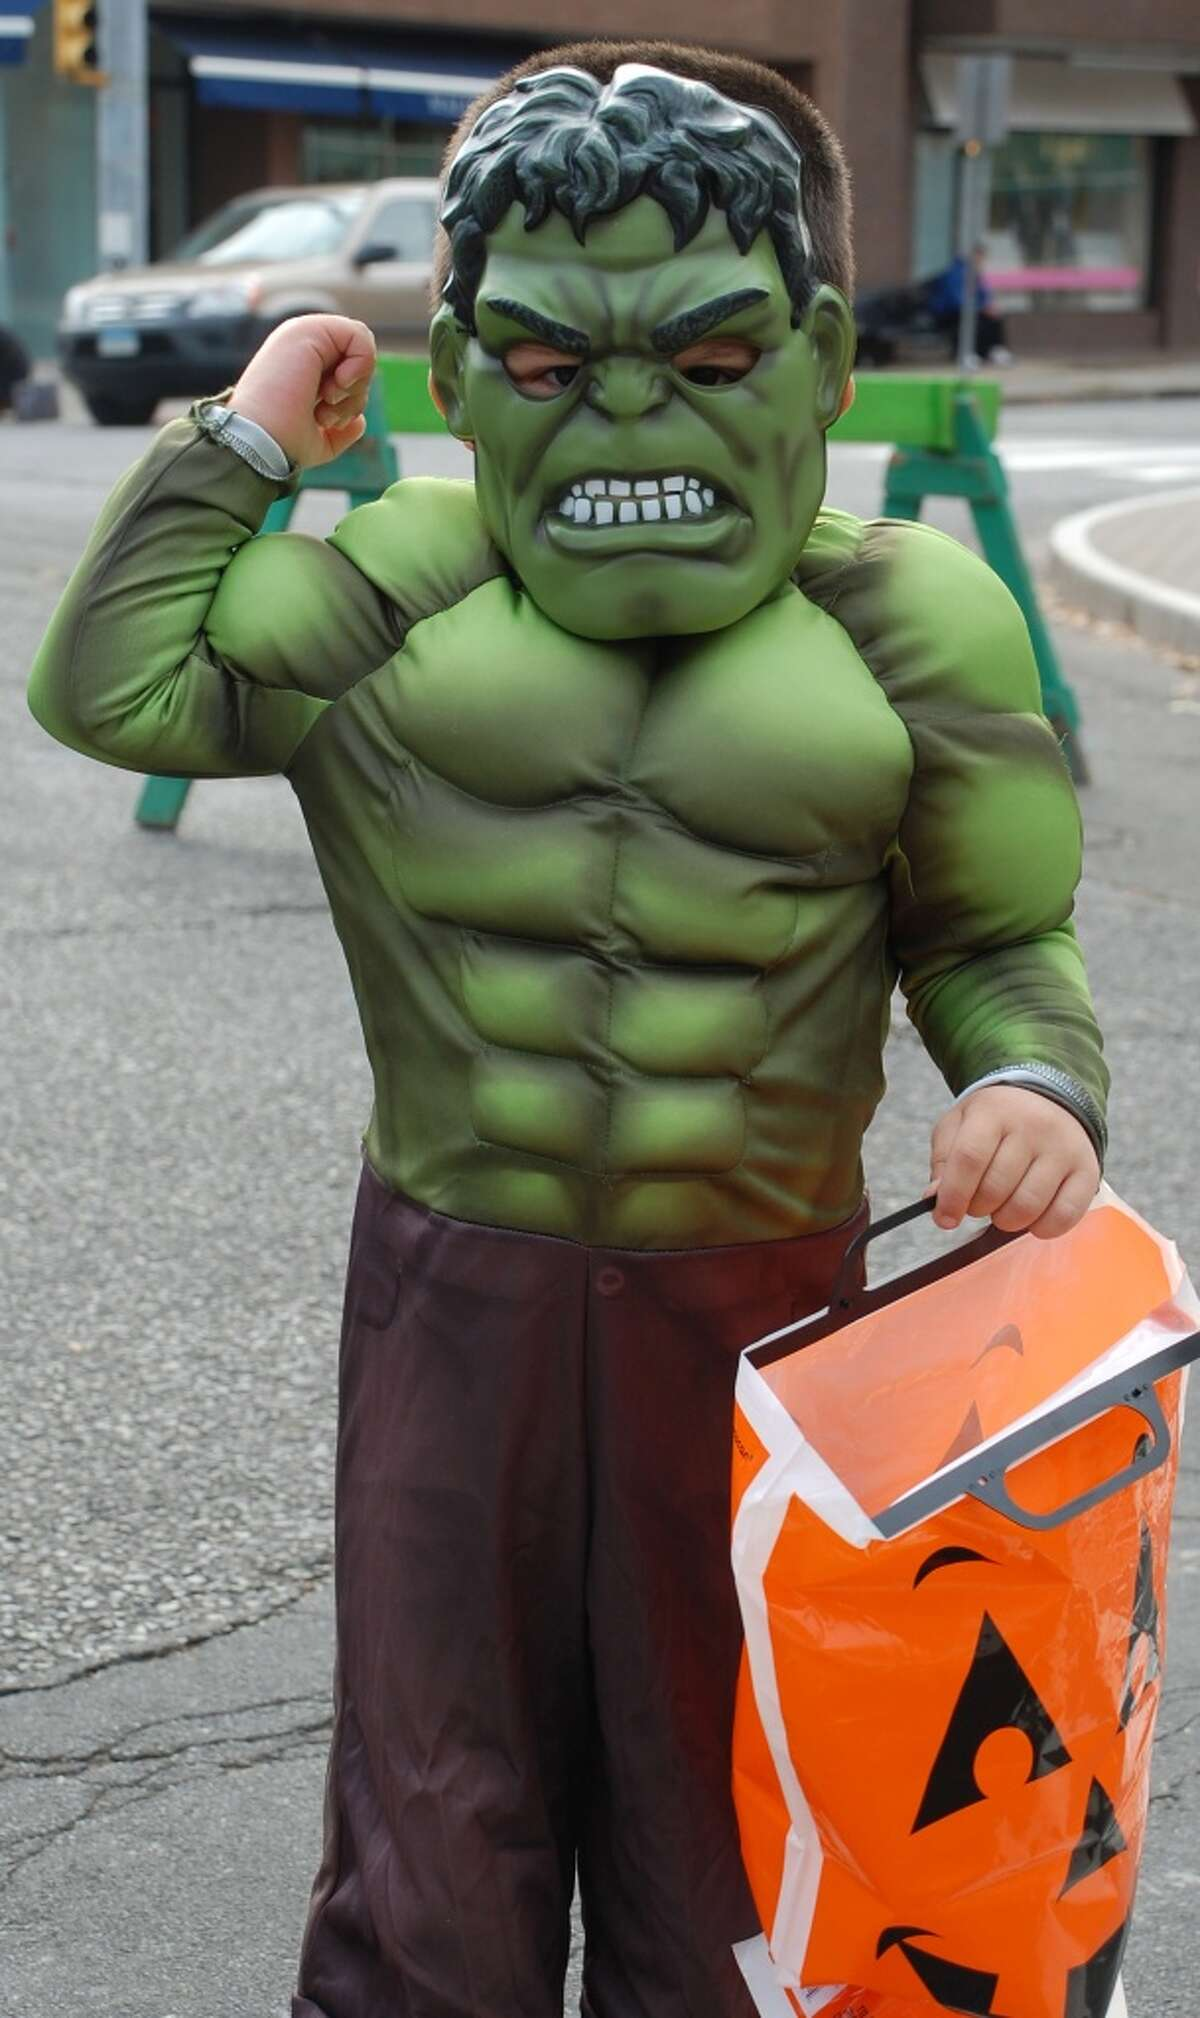 Placing reflective tape somewhere on the back of your costume will help drivers see you. Source:CDC